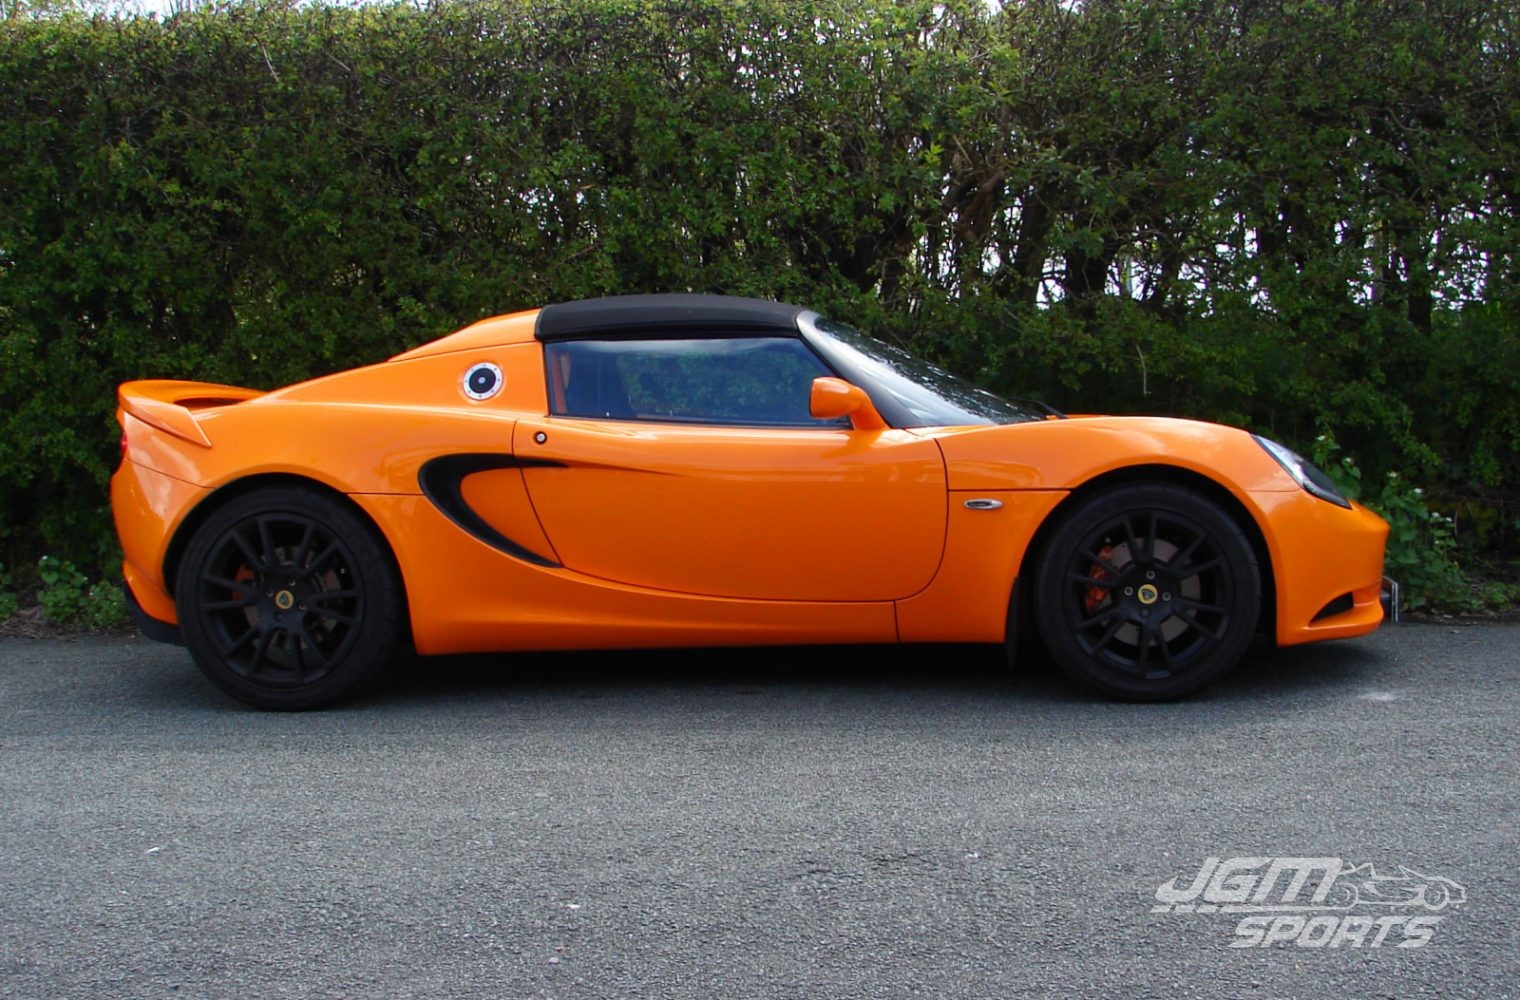 2010 s3 lotus elise sc chrome orange 2 owners from new 12k miles jgmsports. Black Bedroom Furniture Sets. Home Design Ideas